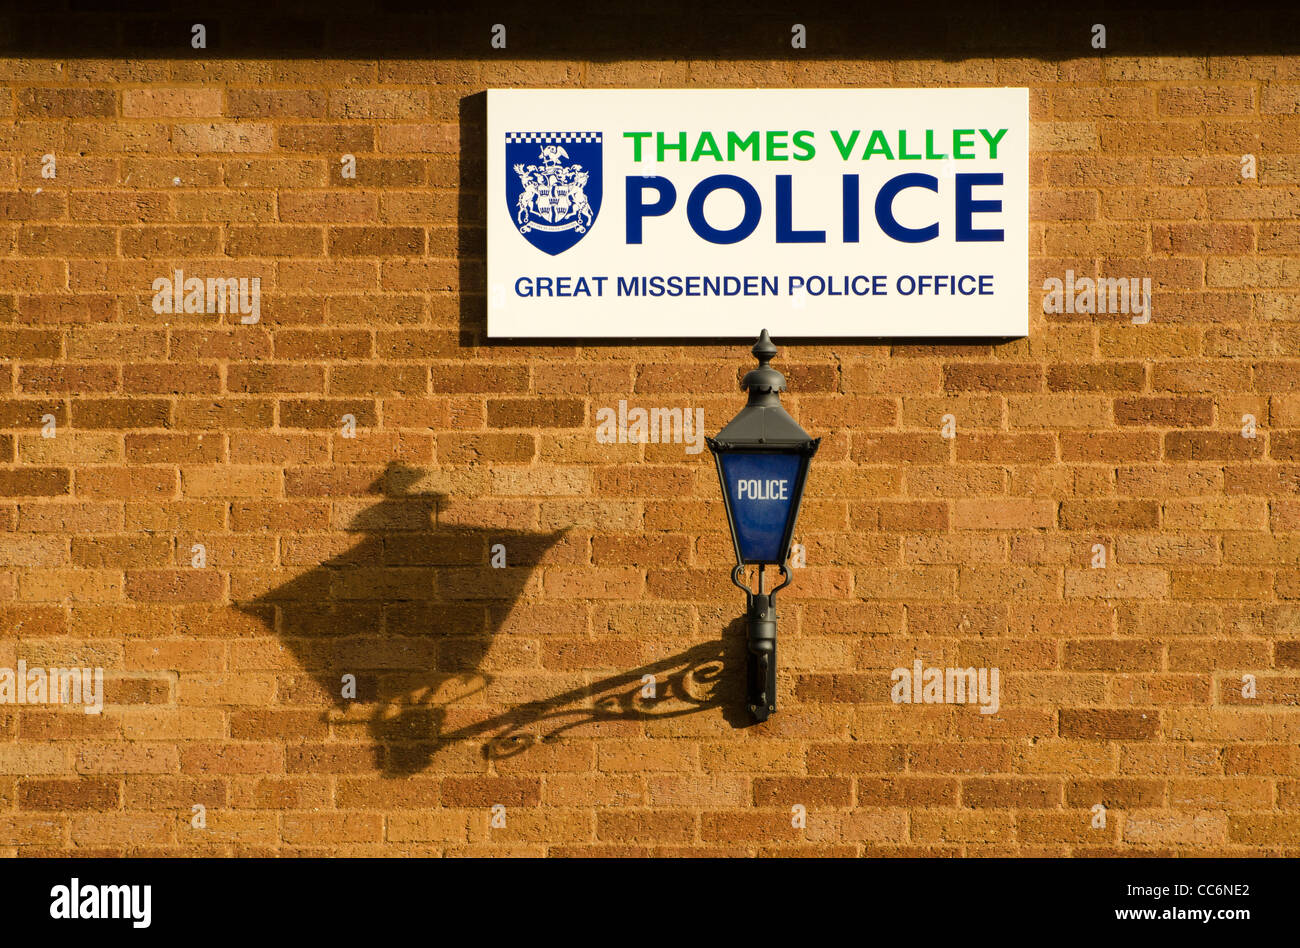 Thames valley police sign and carriage lamp on the side of a brick wall in Great Missenden Bucks UK - Stock Image